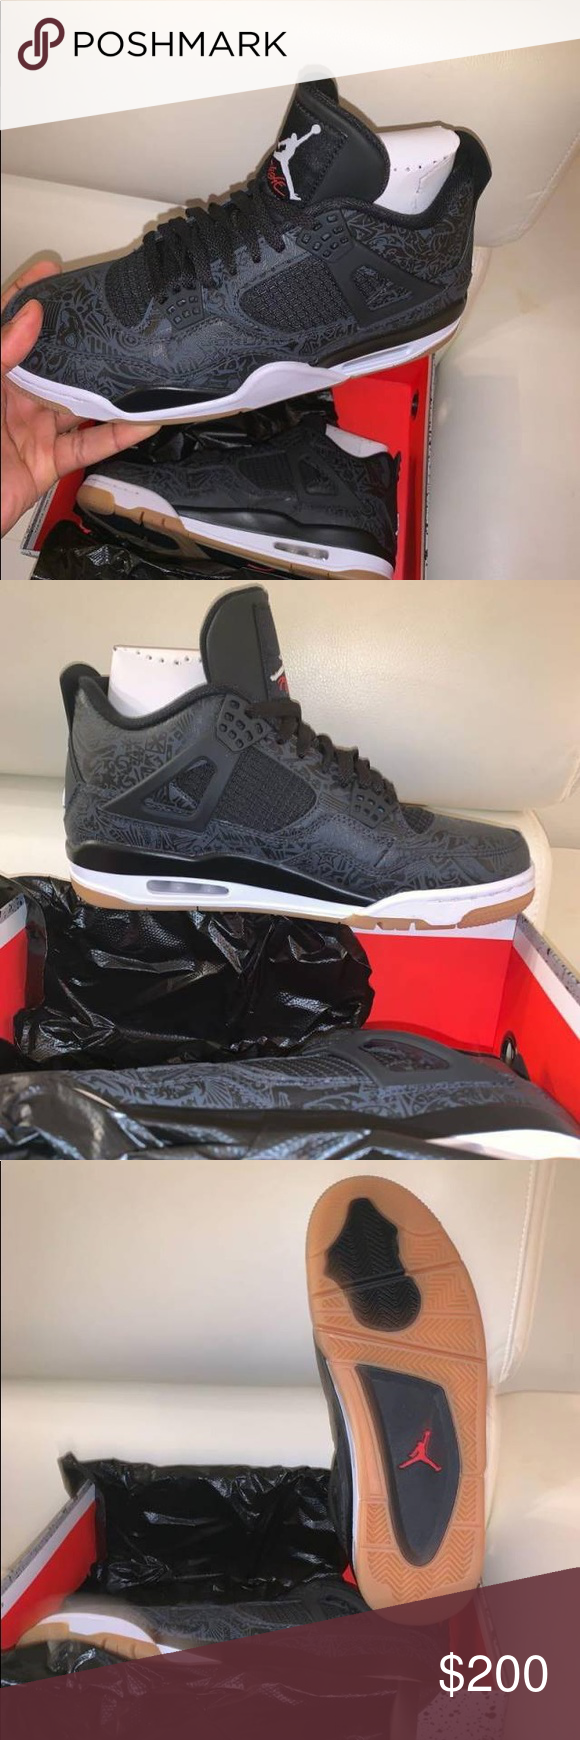 30f1956d5311eb Air Jordan 4 SE Laser Black Gum Finally got these in stock Looking to sell  ASAP